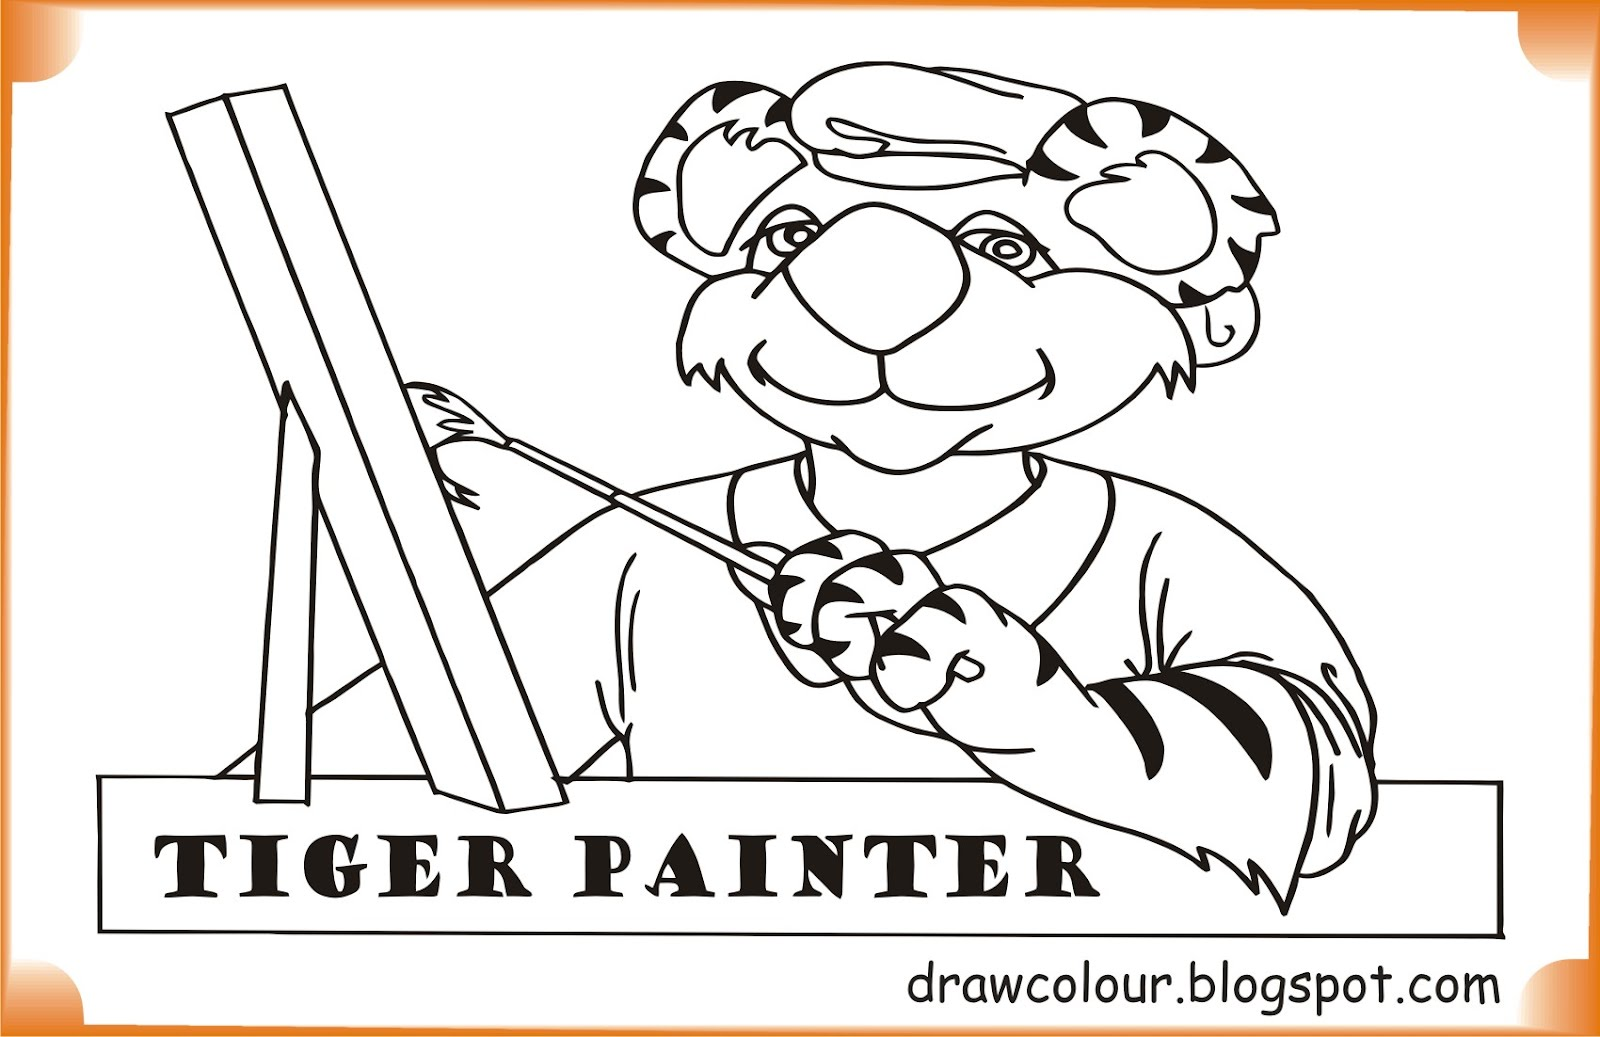 printable-tiger-painter-coloring-pages